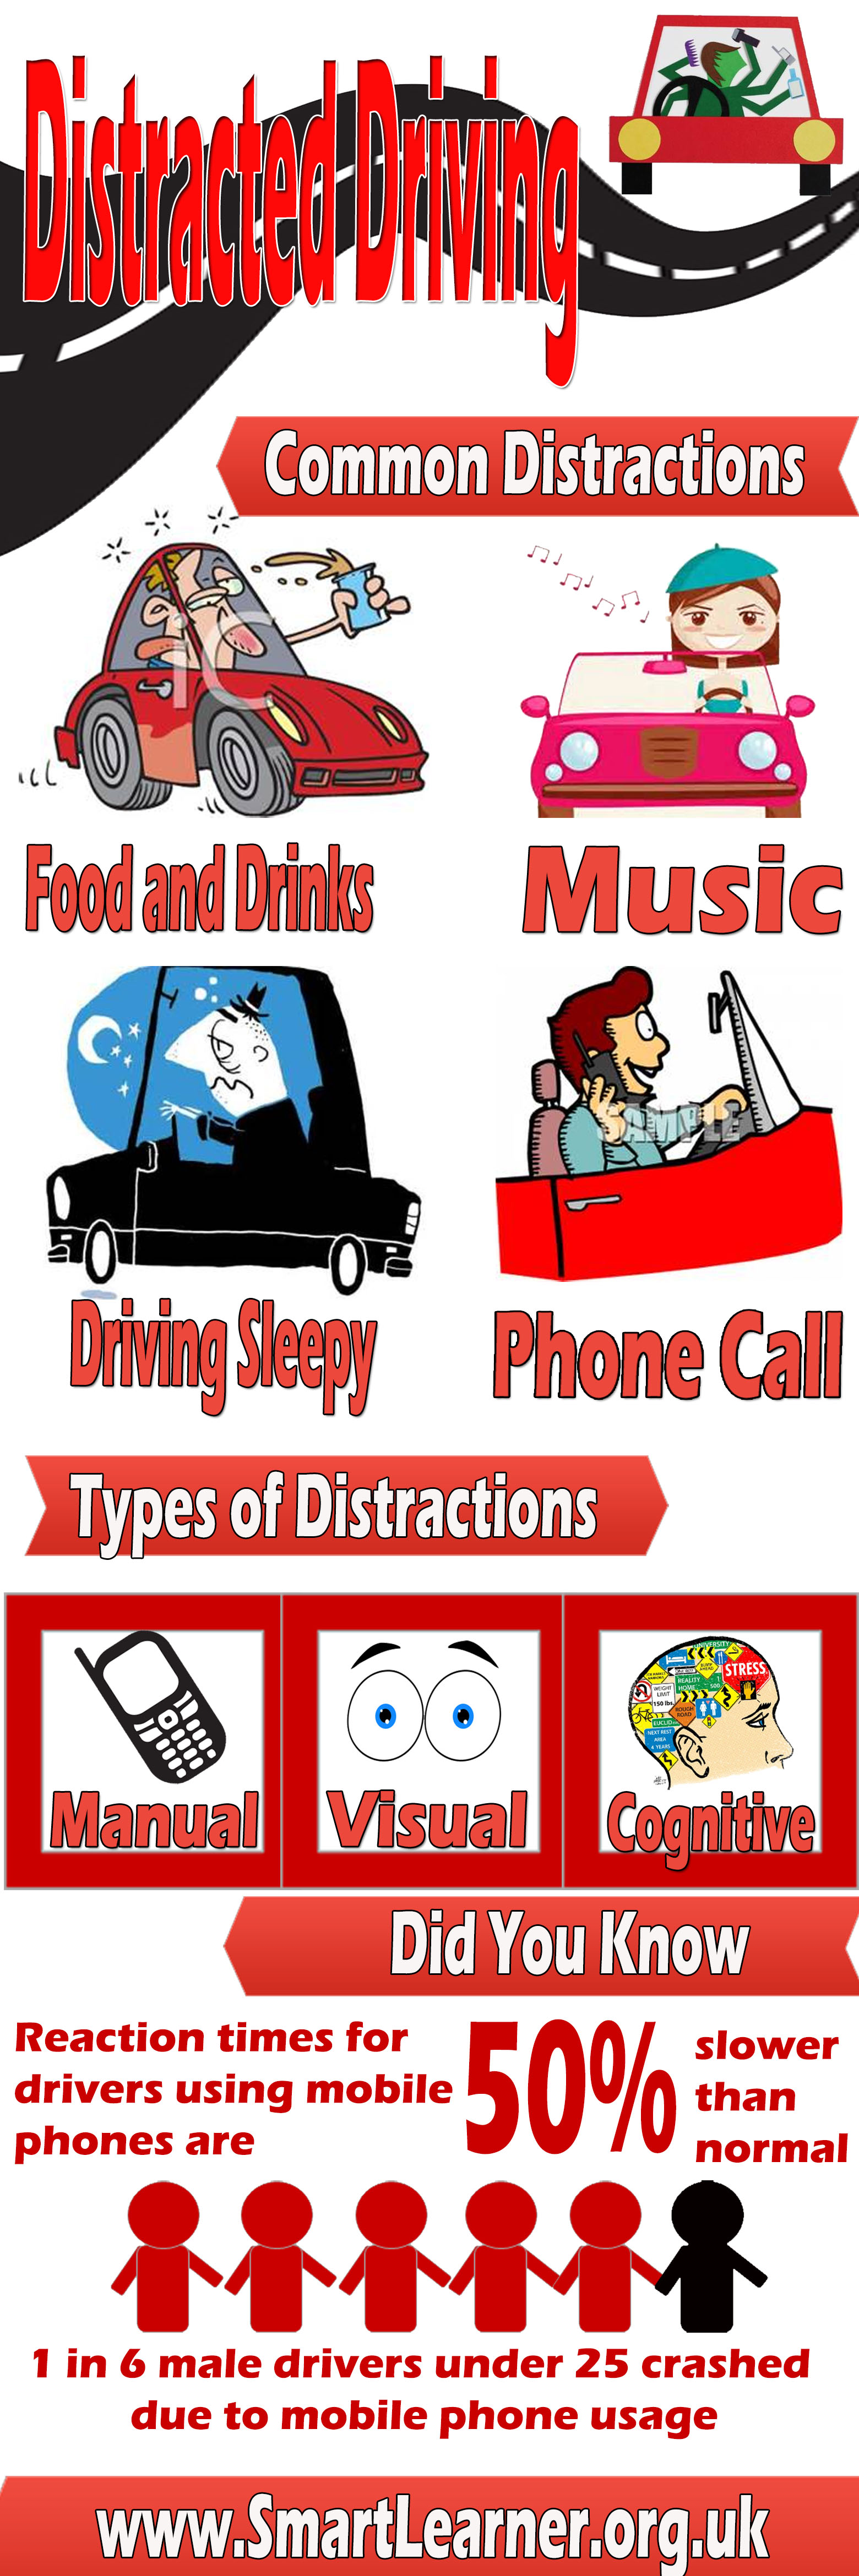 infographics brought to you by http//www.smartlearner